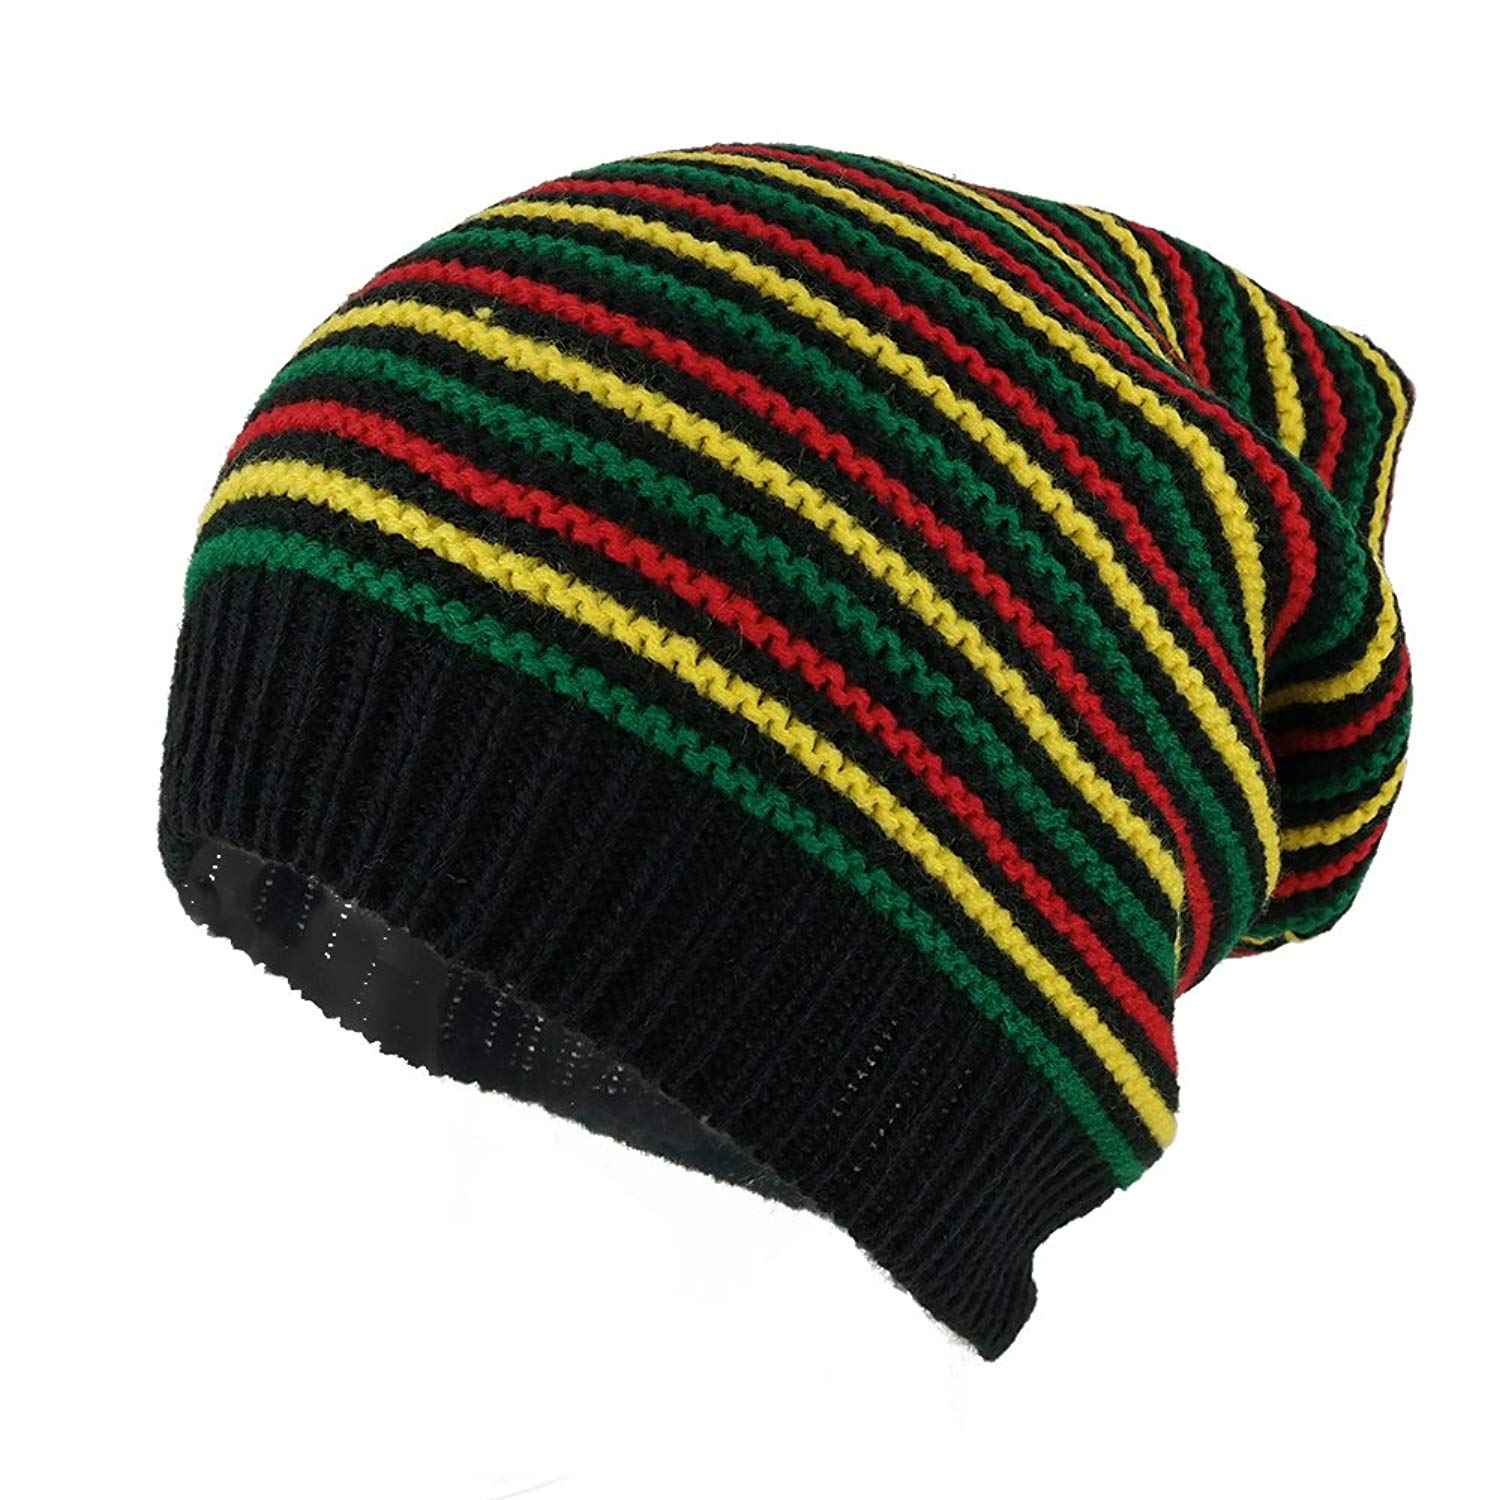 b6b8e9bf64c Get Quotations · Rasta Jamaican Crochet Colorful Stripes Baggie Slouch  Acrylic Beanie Hat